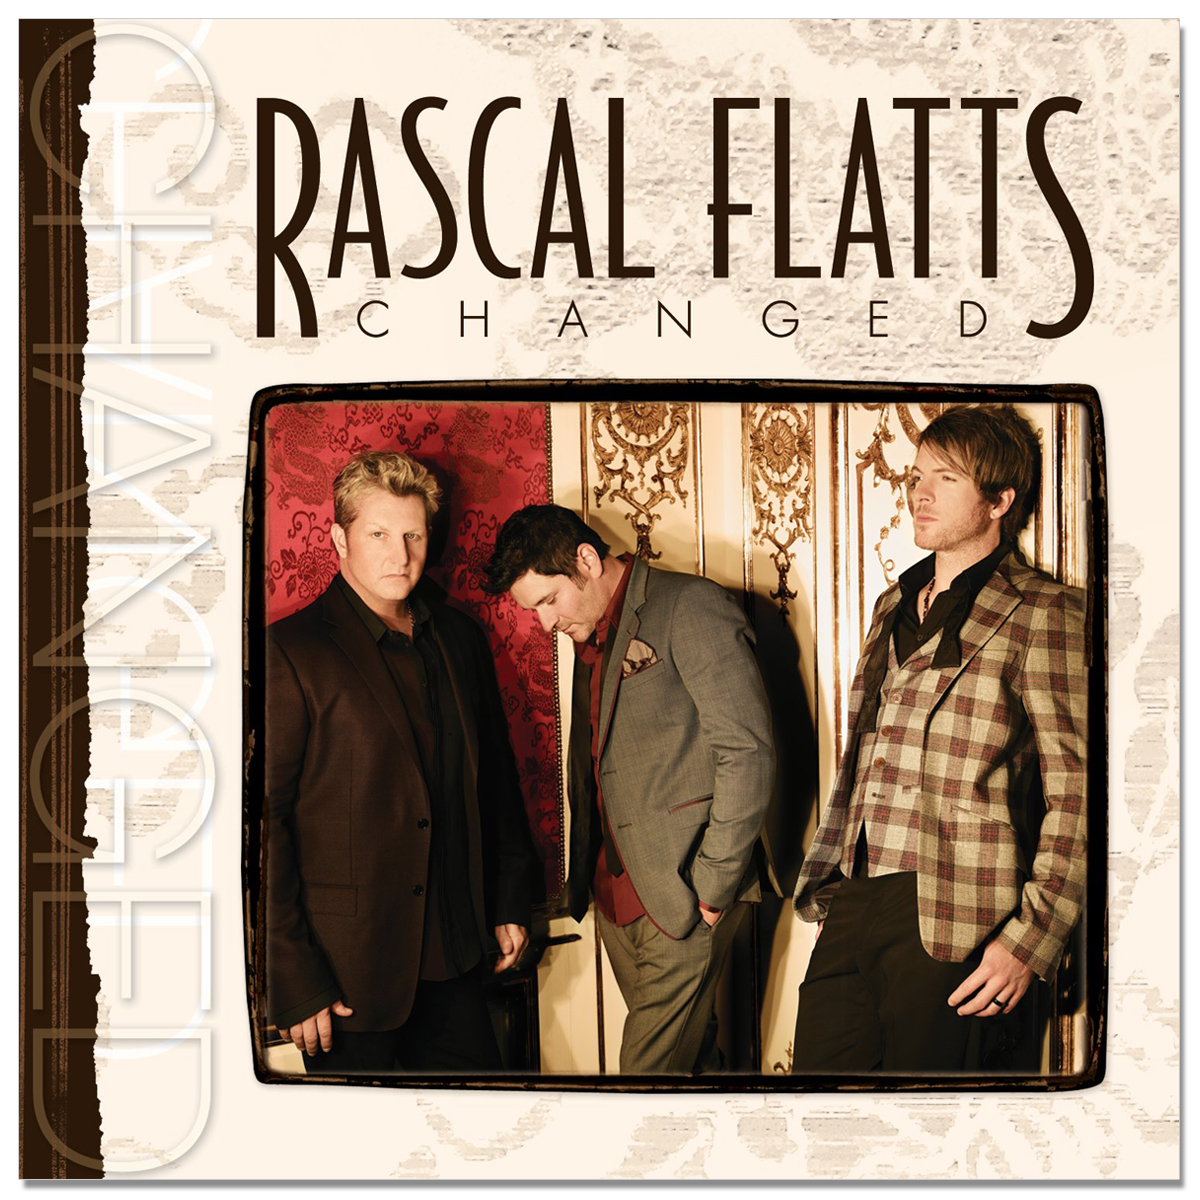 Rascal Flatts - Changed (Deluxe) - MP3 Download